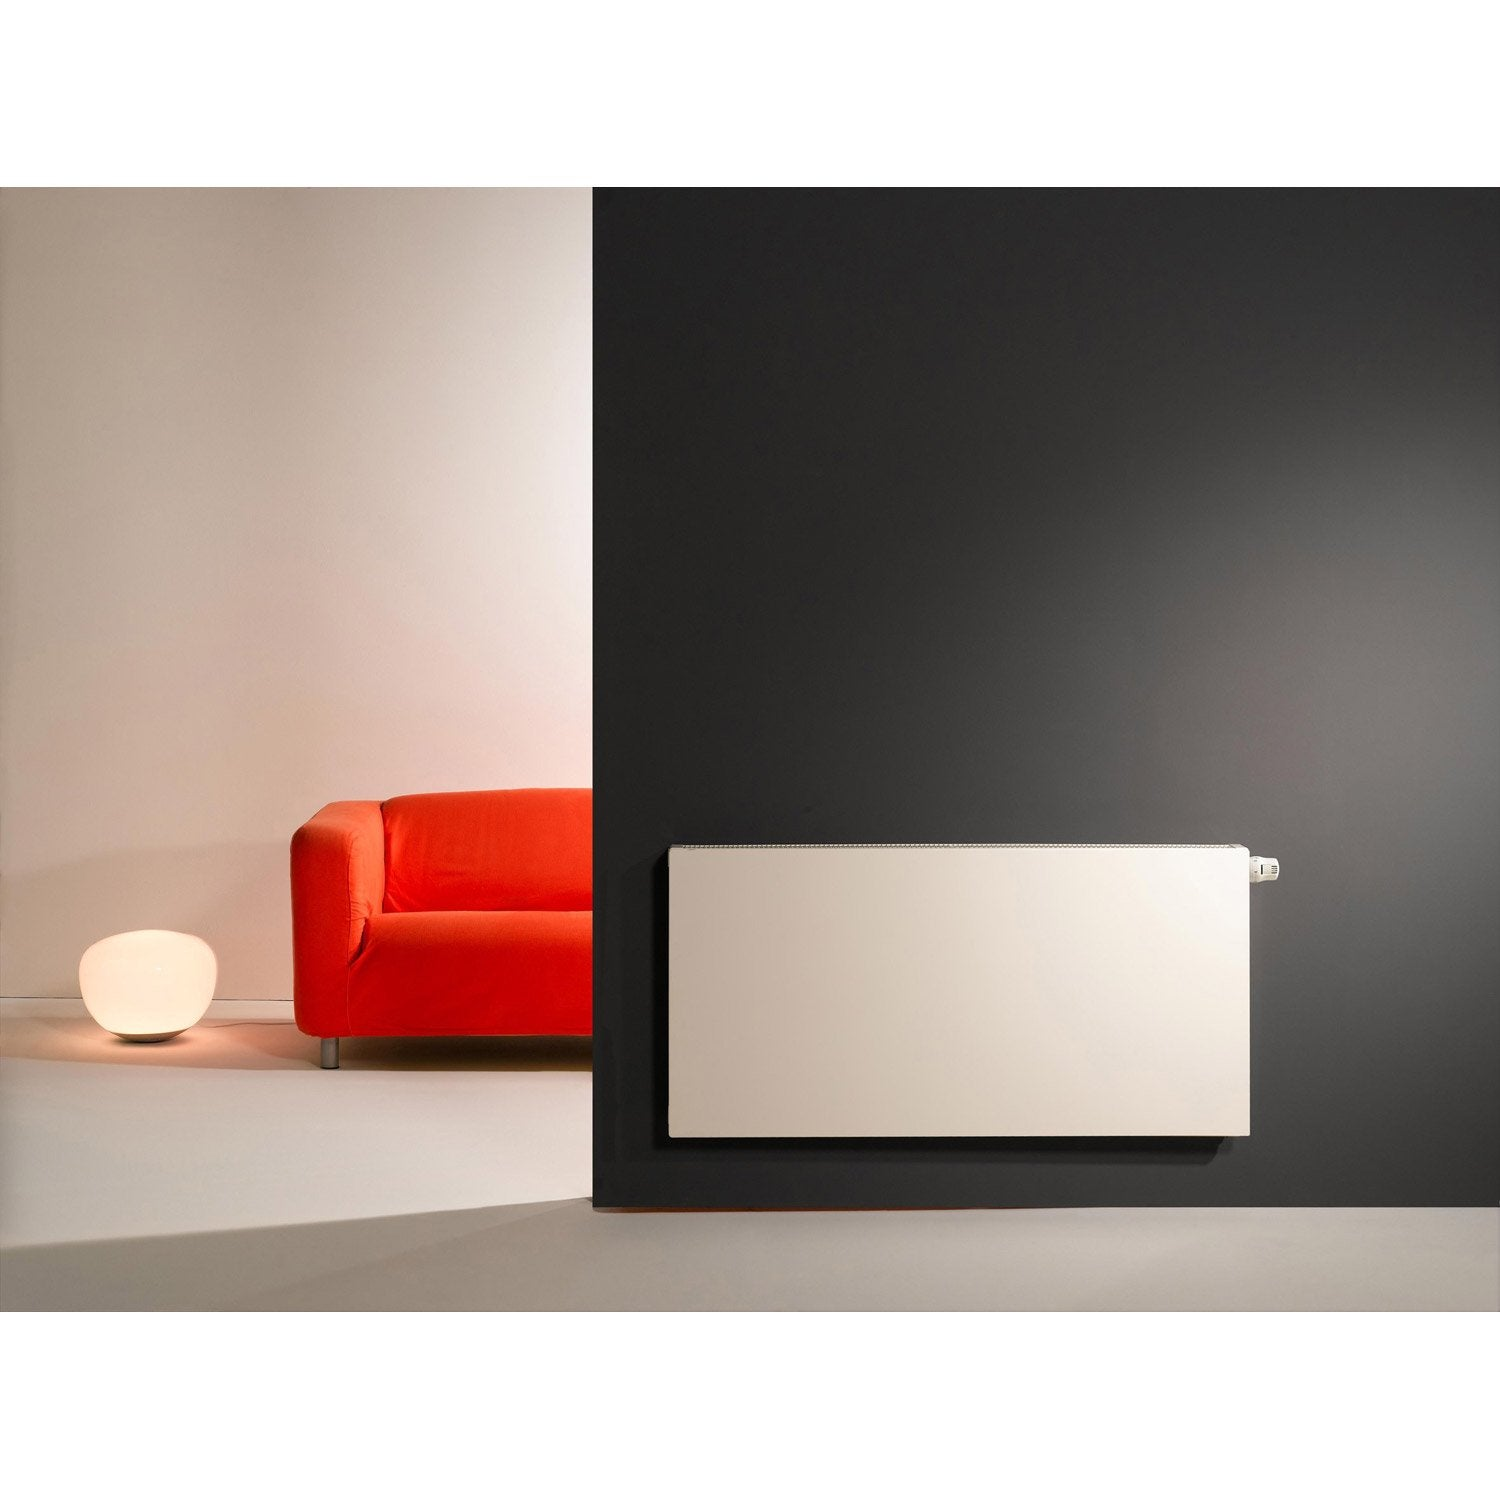 radiateur chauffage central colima blanc cm 1521 w leroy merlin. Black Bedroom Furniture Sets. Home Design Ideas